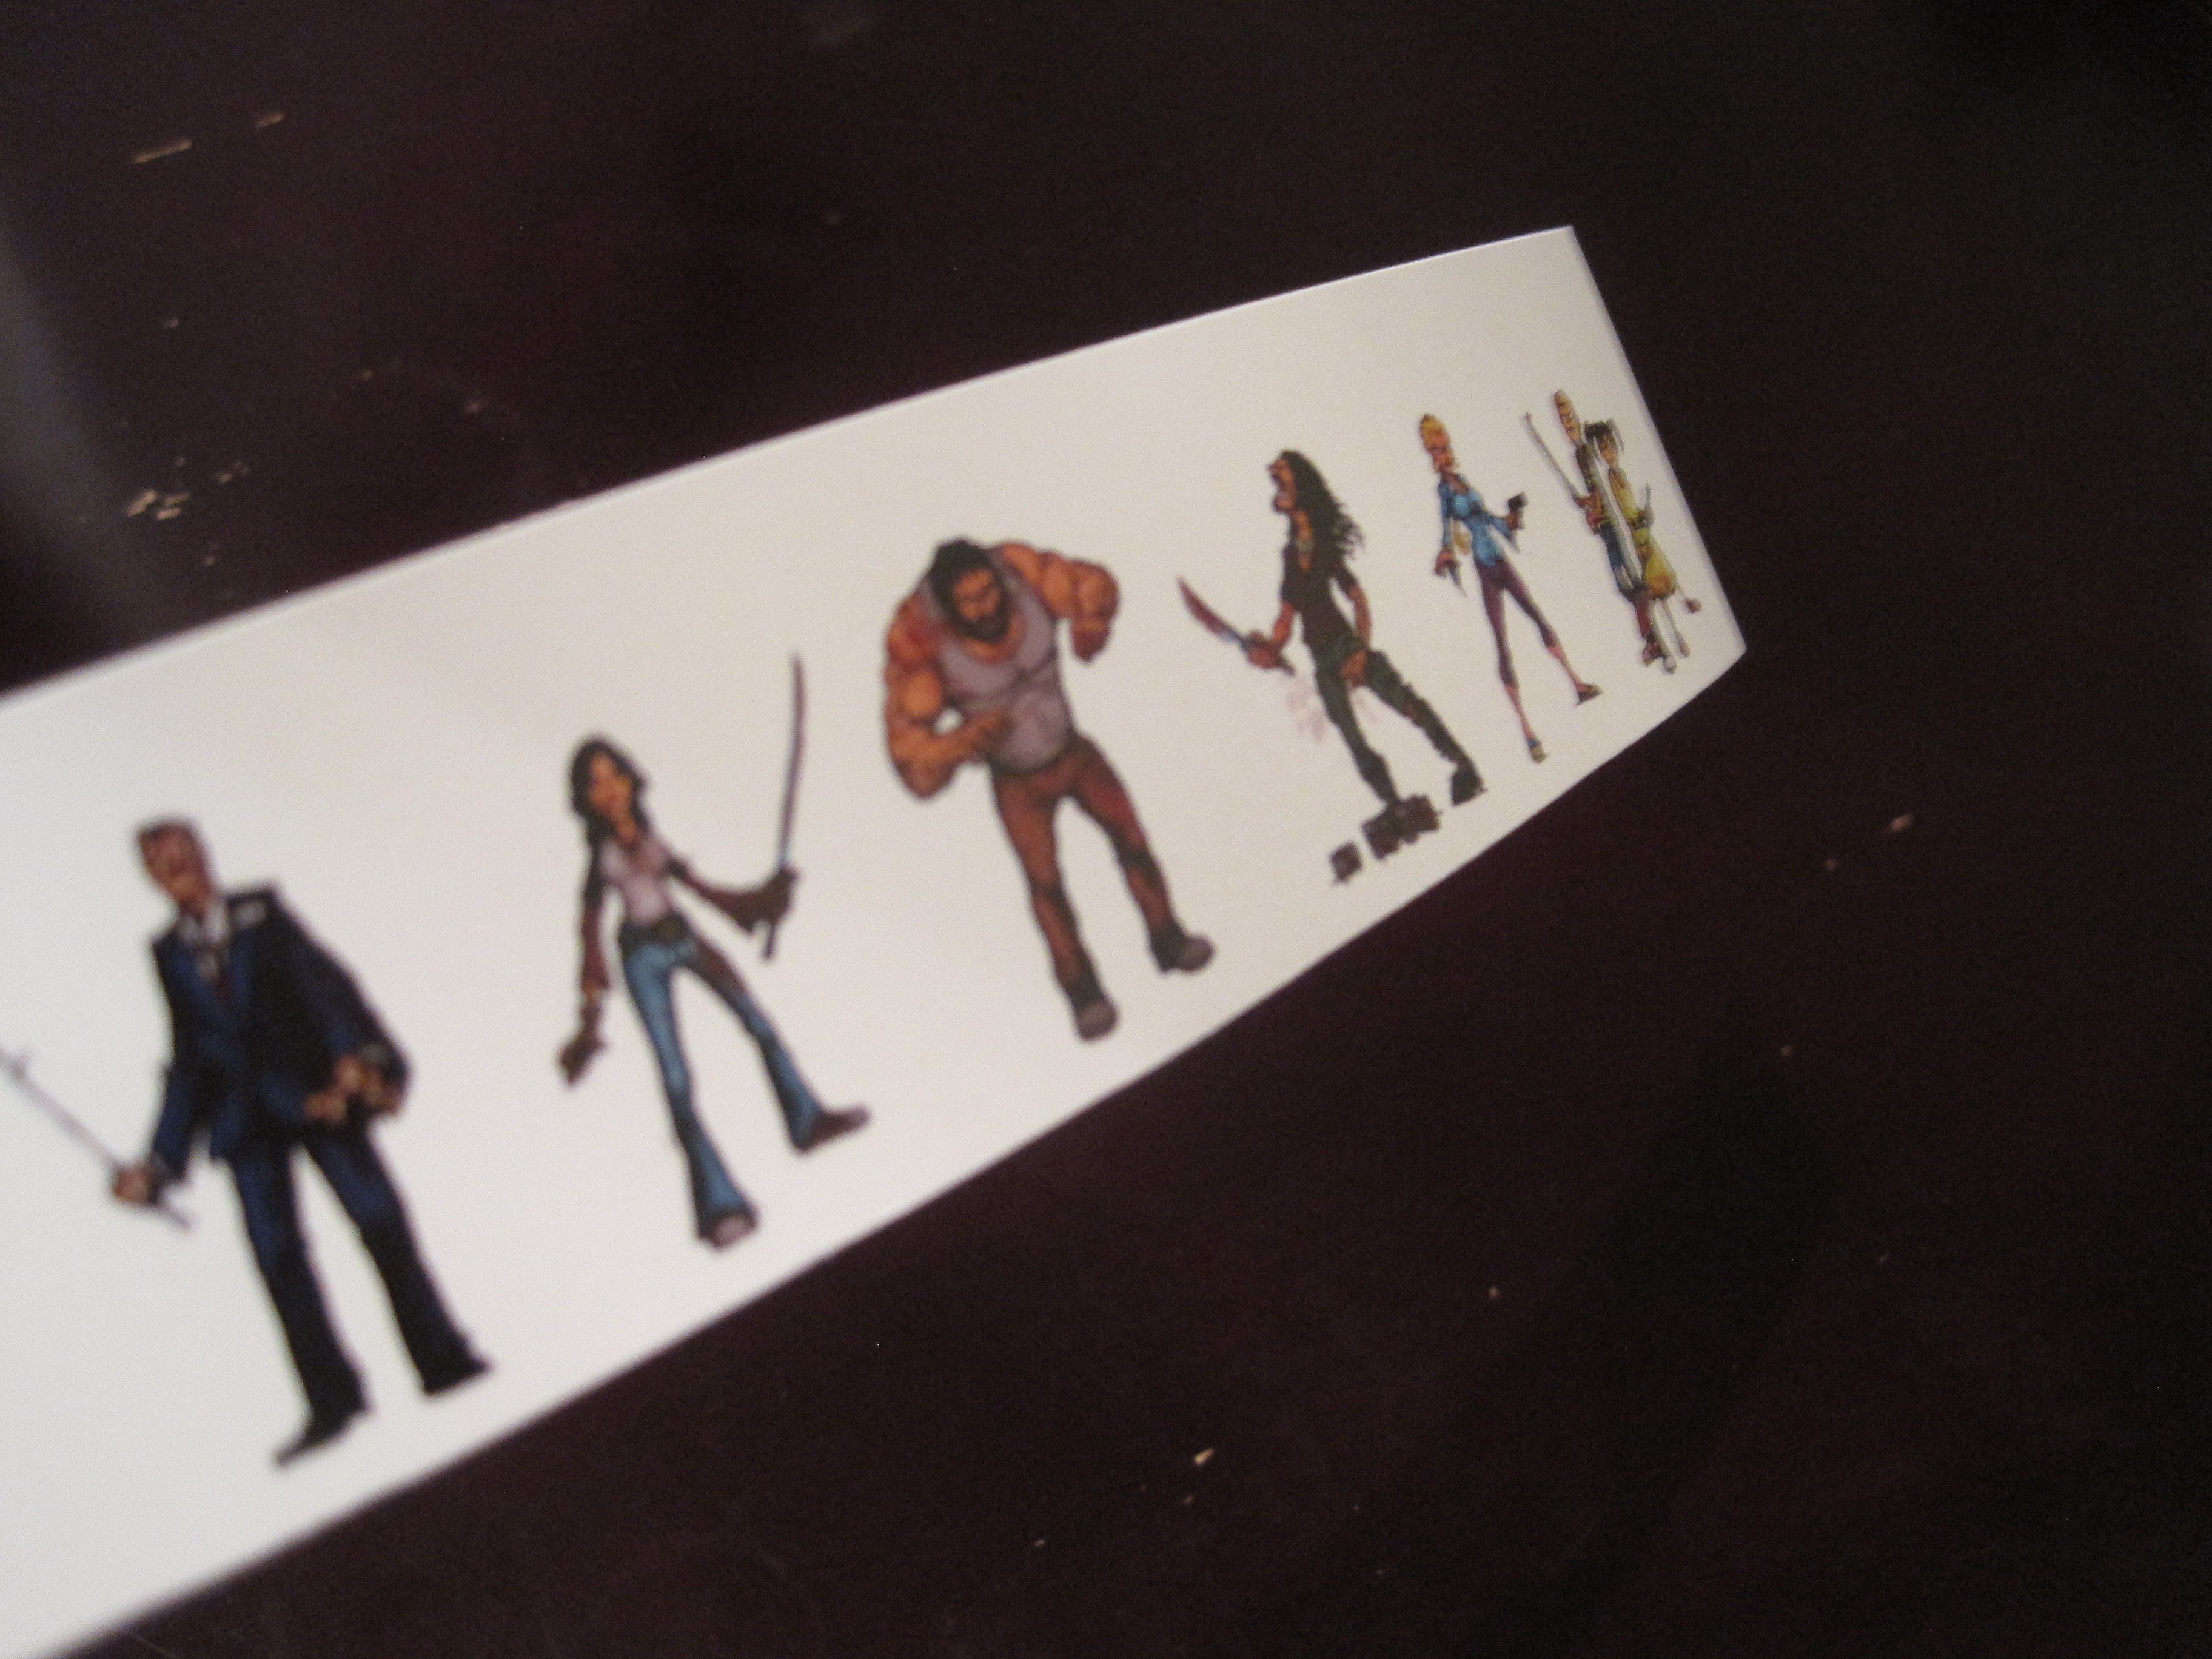 How to make custom avatars for your print and play or prototype the characters double sided top to top making sure the 2 sides are mirror images of each other use thick paper ie those used for business cards reheart Image collections